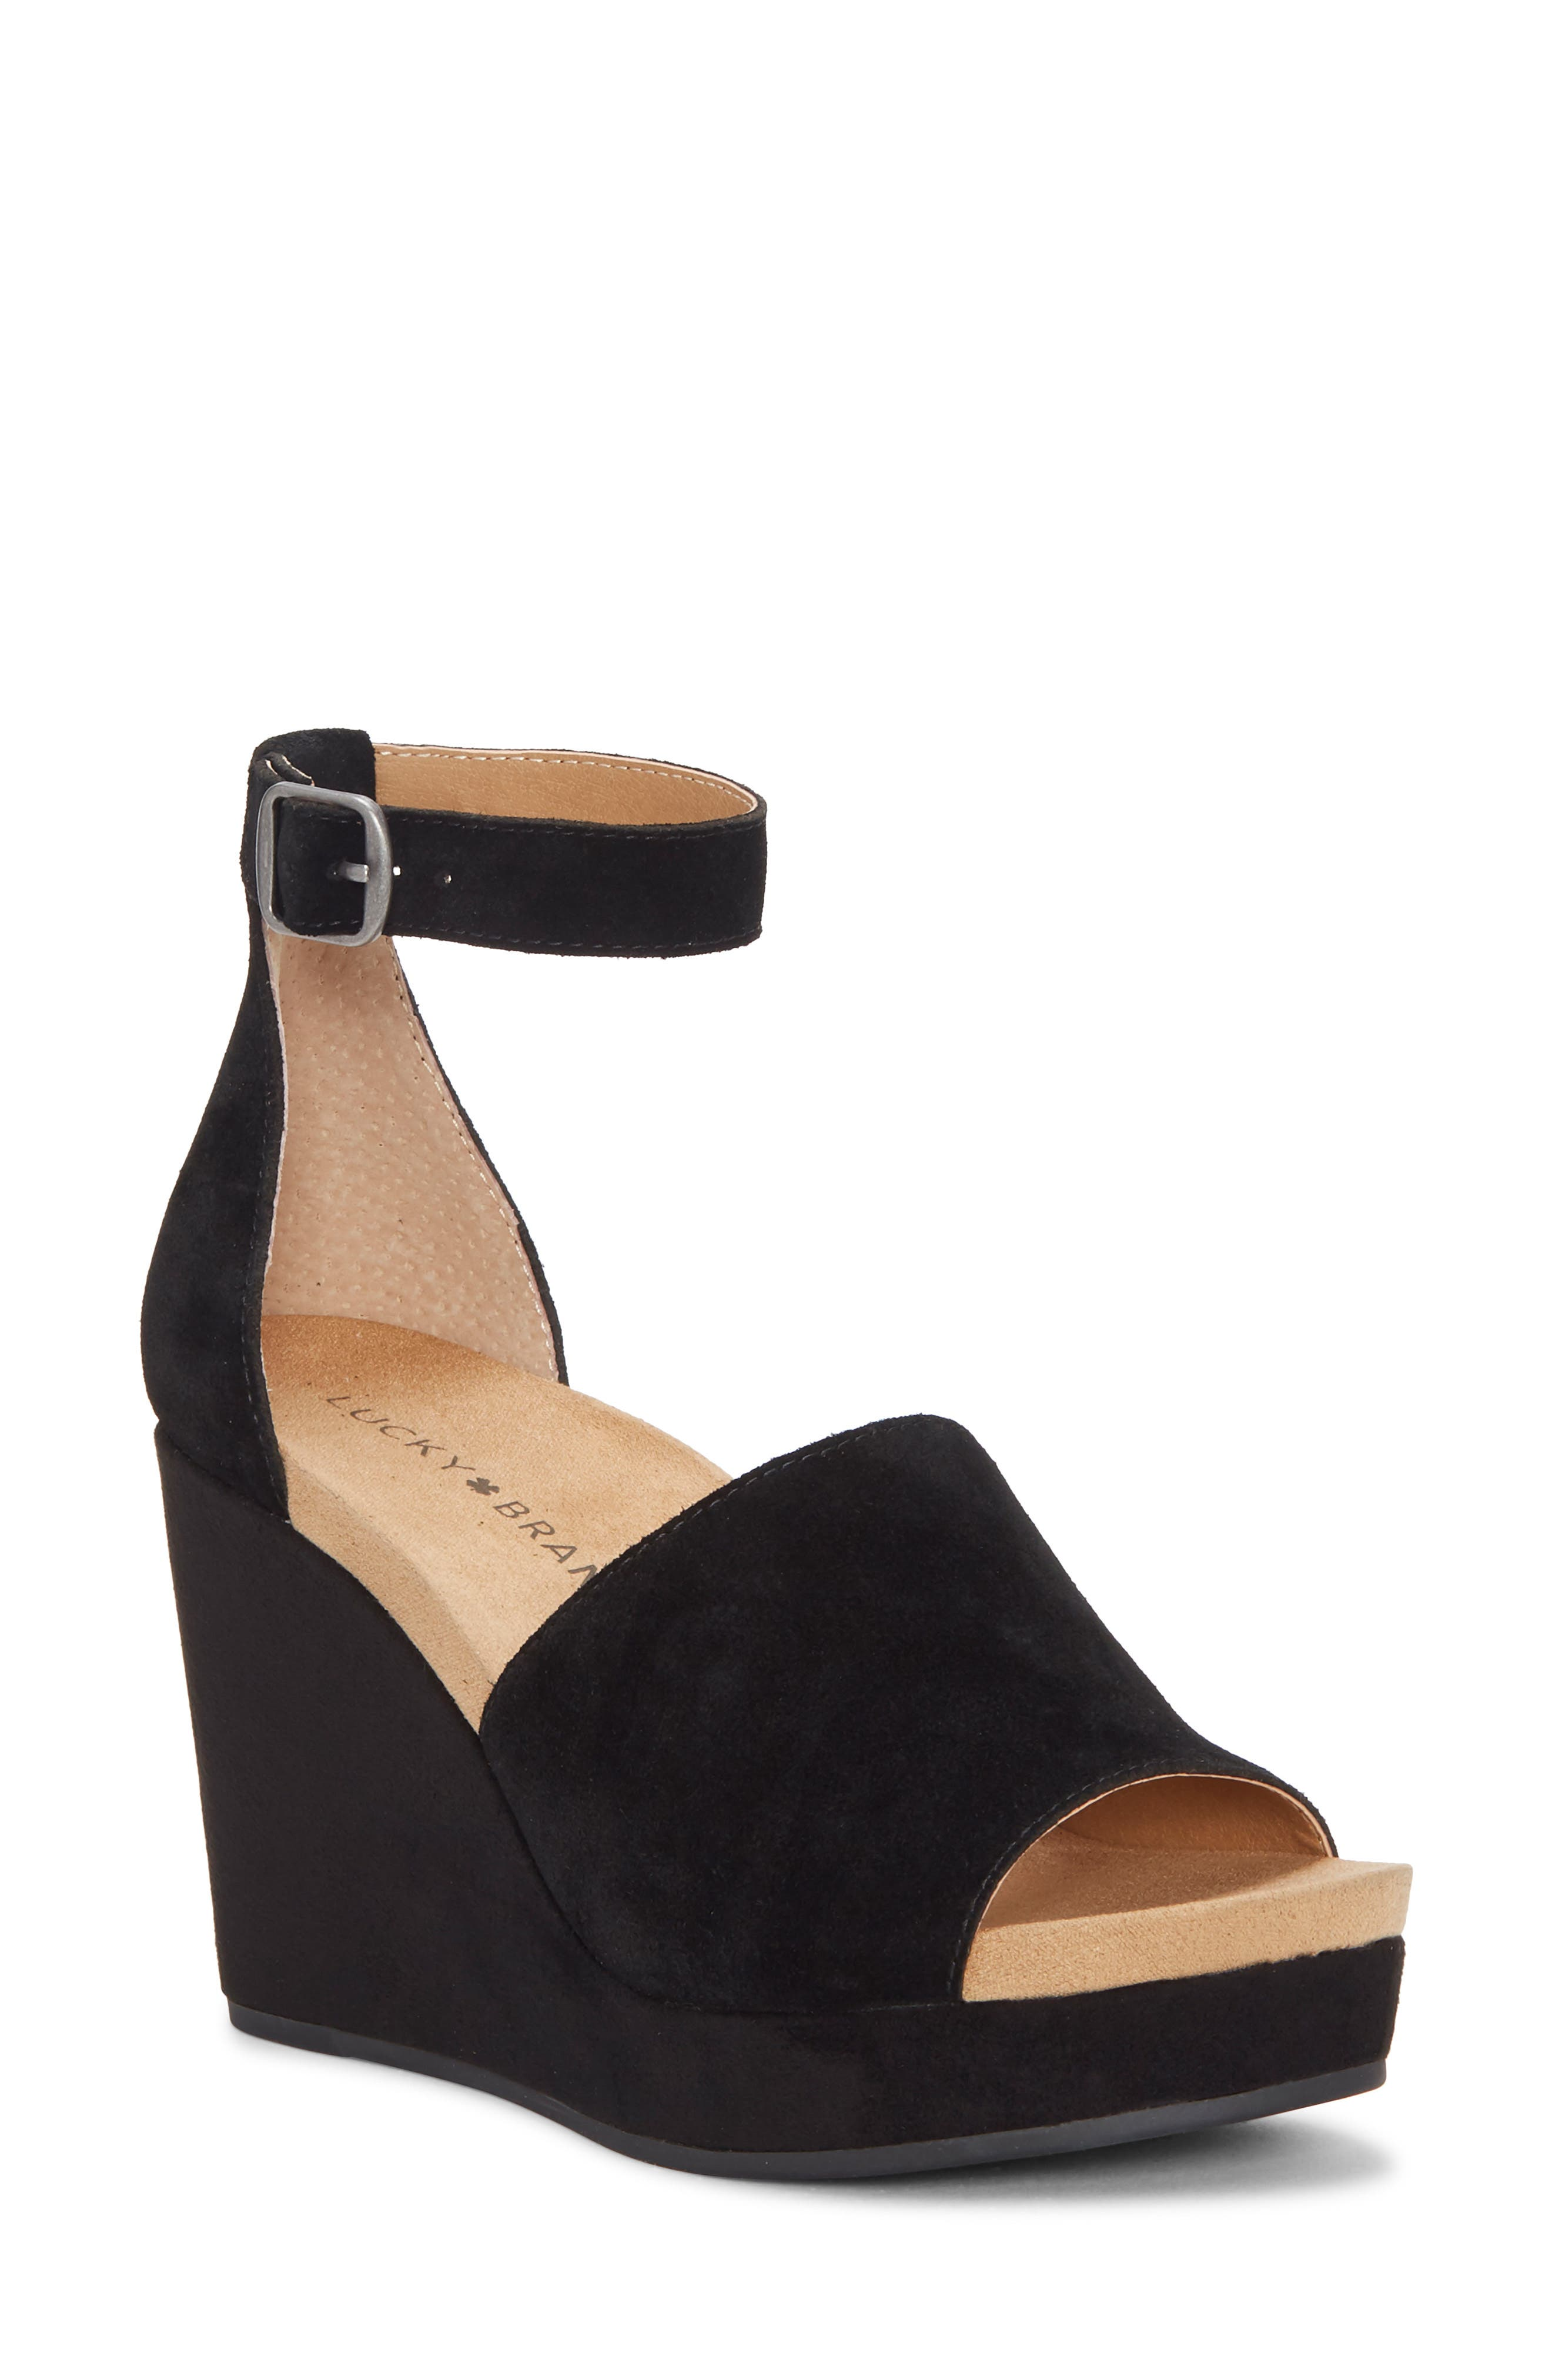 Yemisa Wedge Ankle Strap Sandal, Main, color, BLACK OILED SUEDE